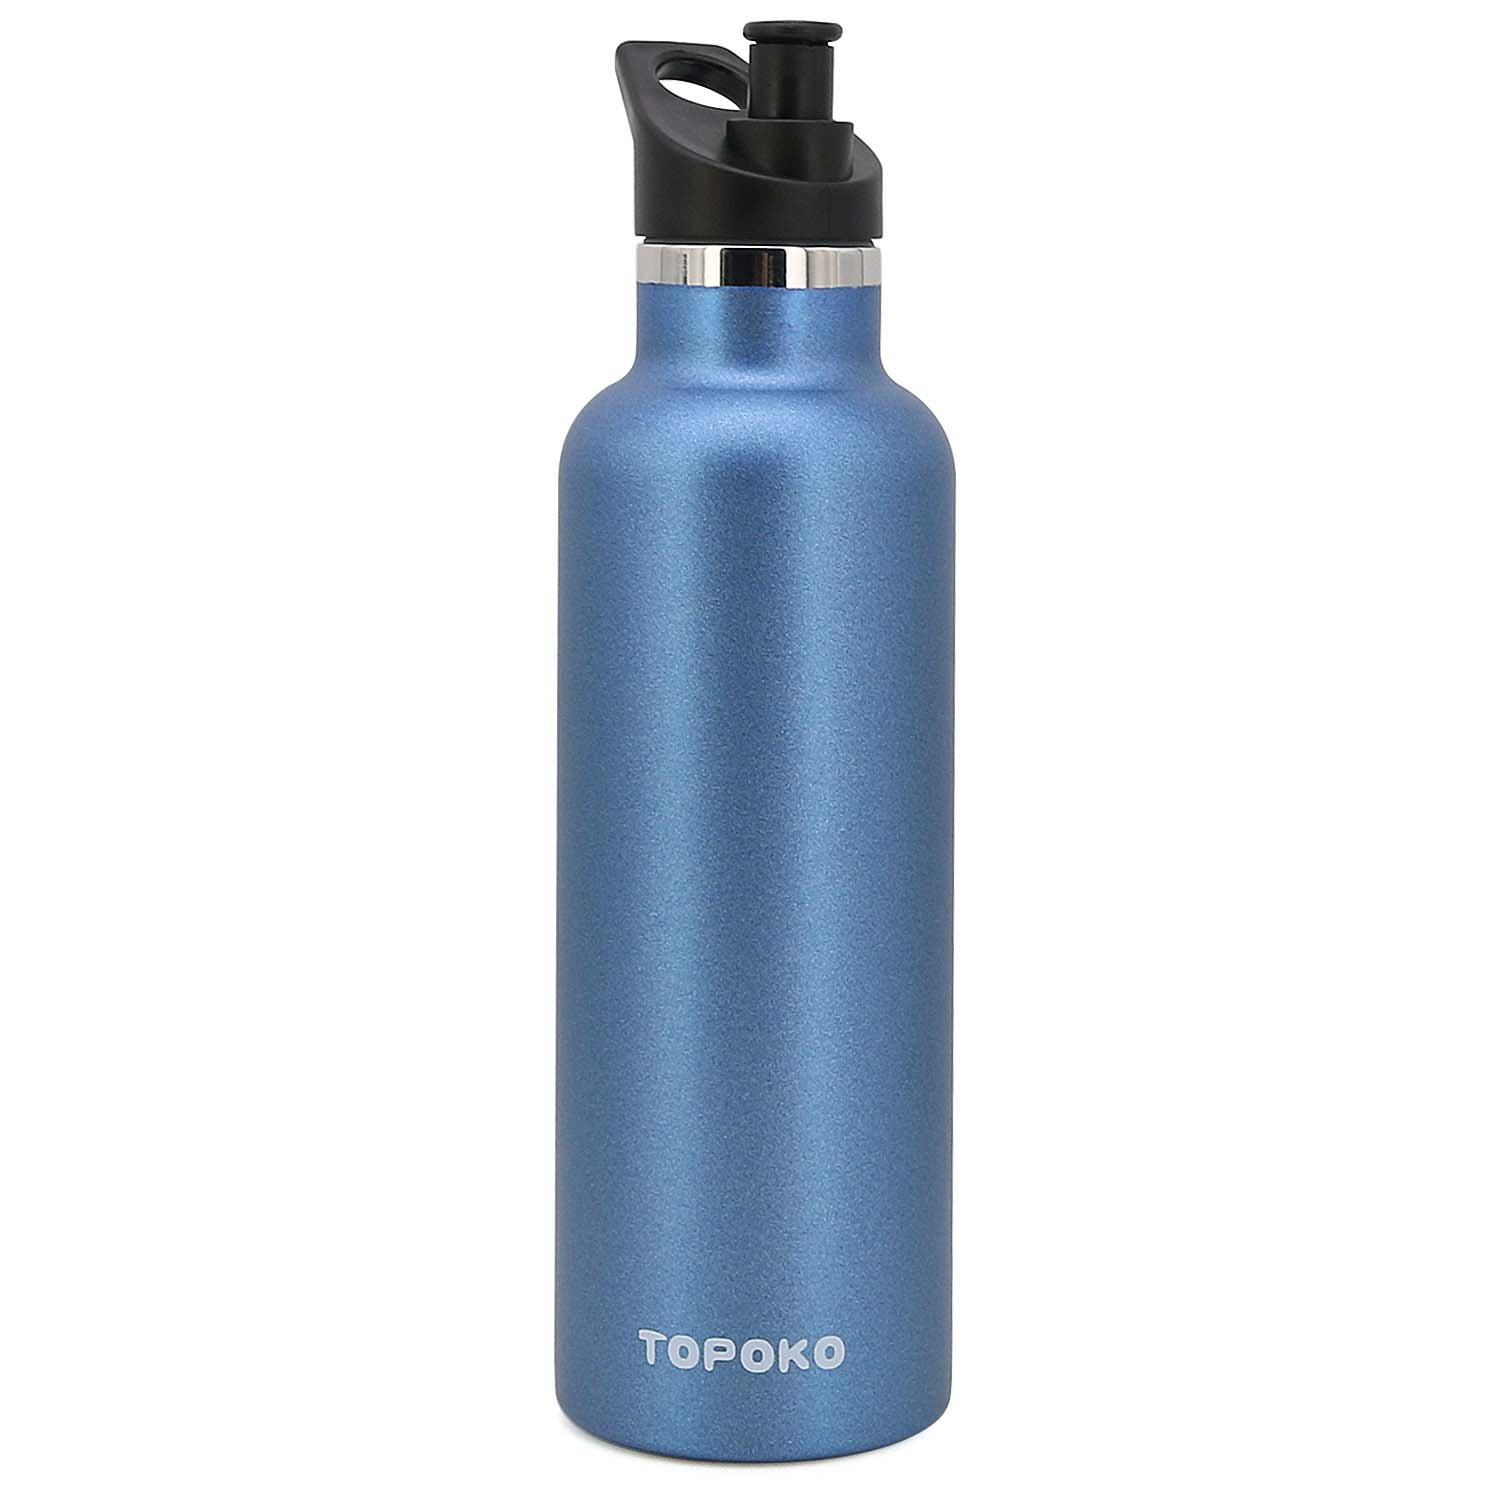 TOPOKO 25 OZ Double Wall Stainless Steel Water Bottle, Straw Lid with Handle or Bite Valve Top, Vacuum Insulated, Sweat Proof, Leak Proof Thermos Standard Mouth. (Blue)